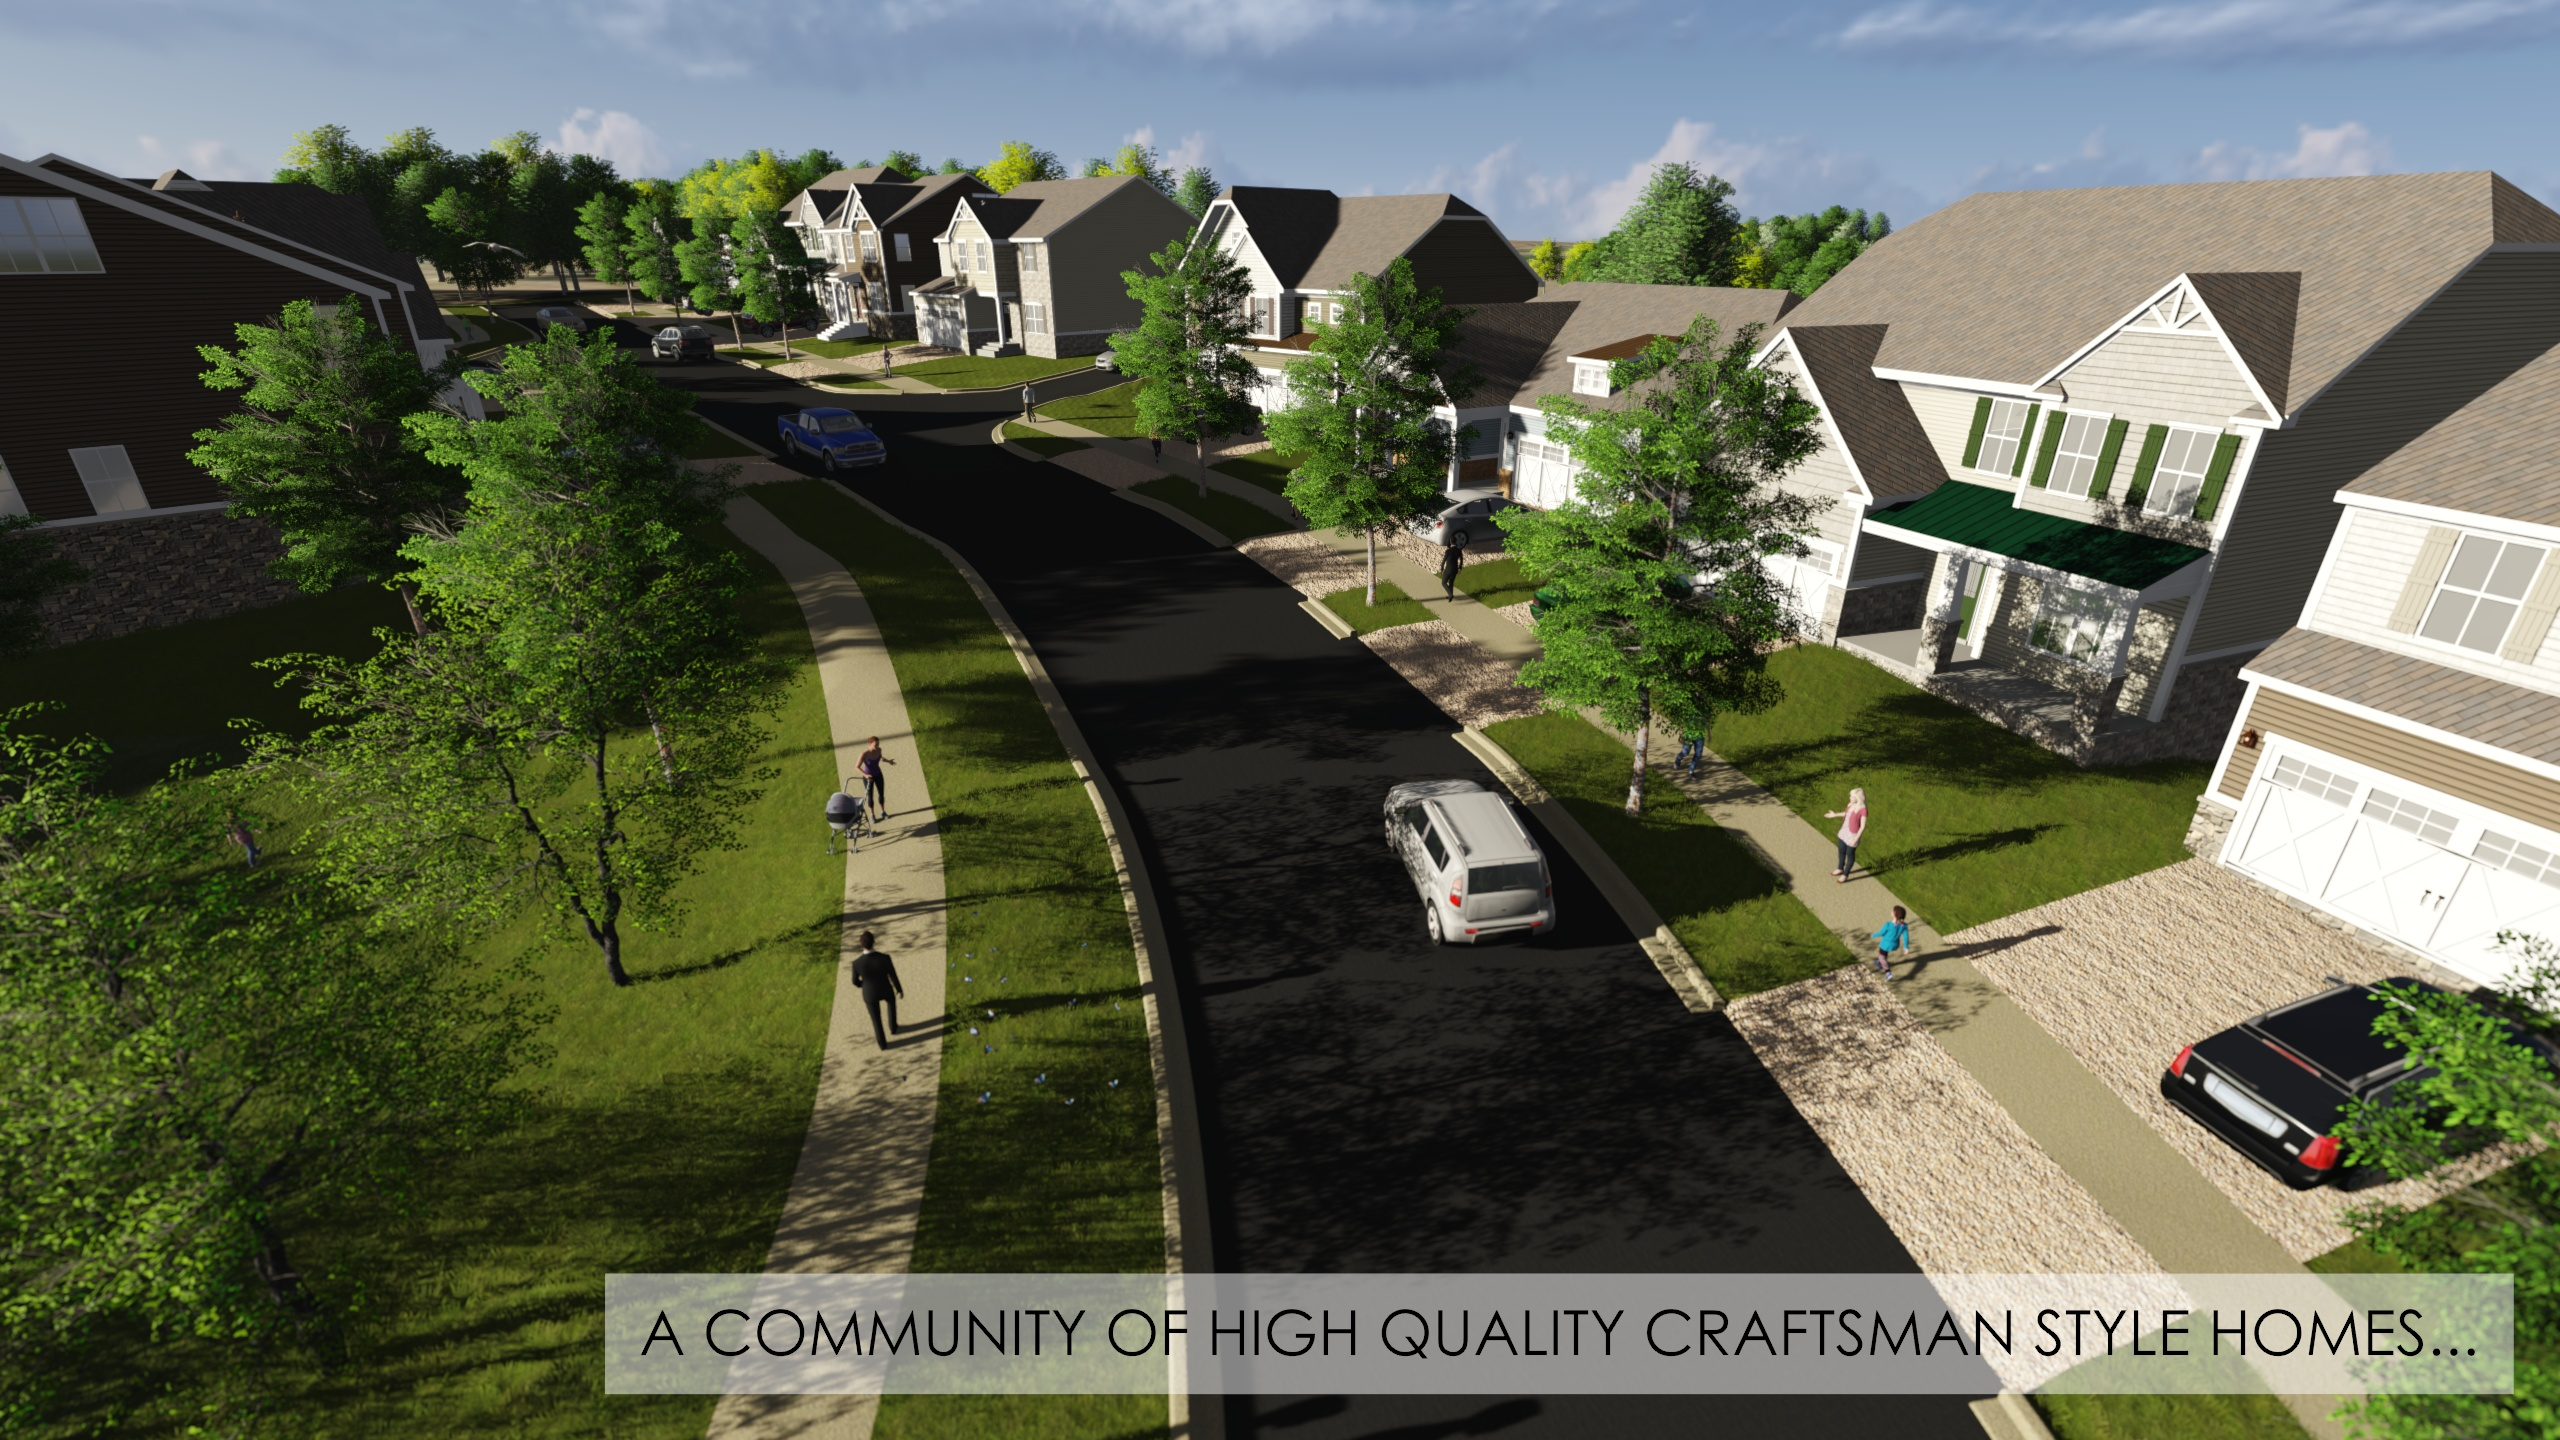 High Quality Cfrastman Style Homes